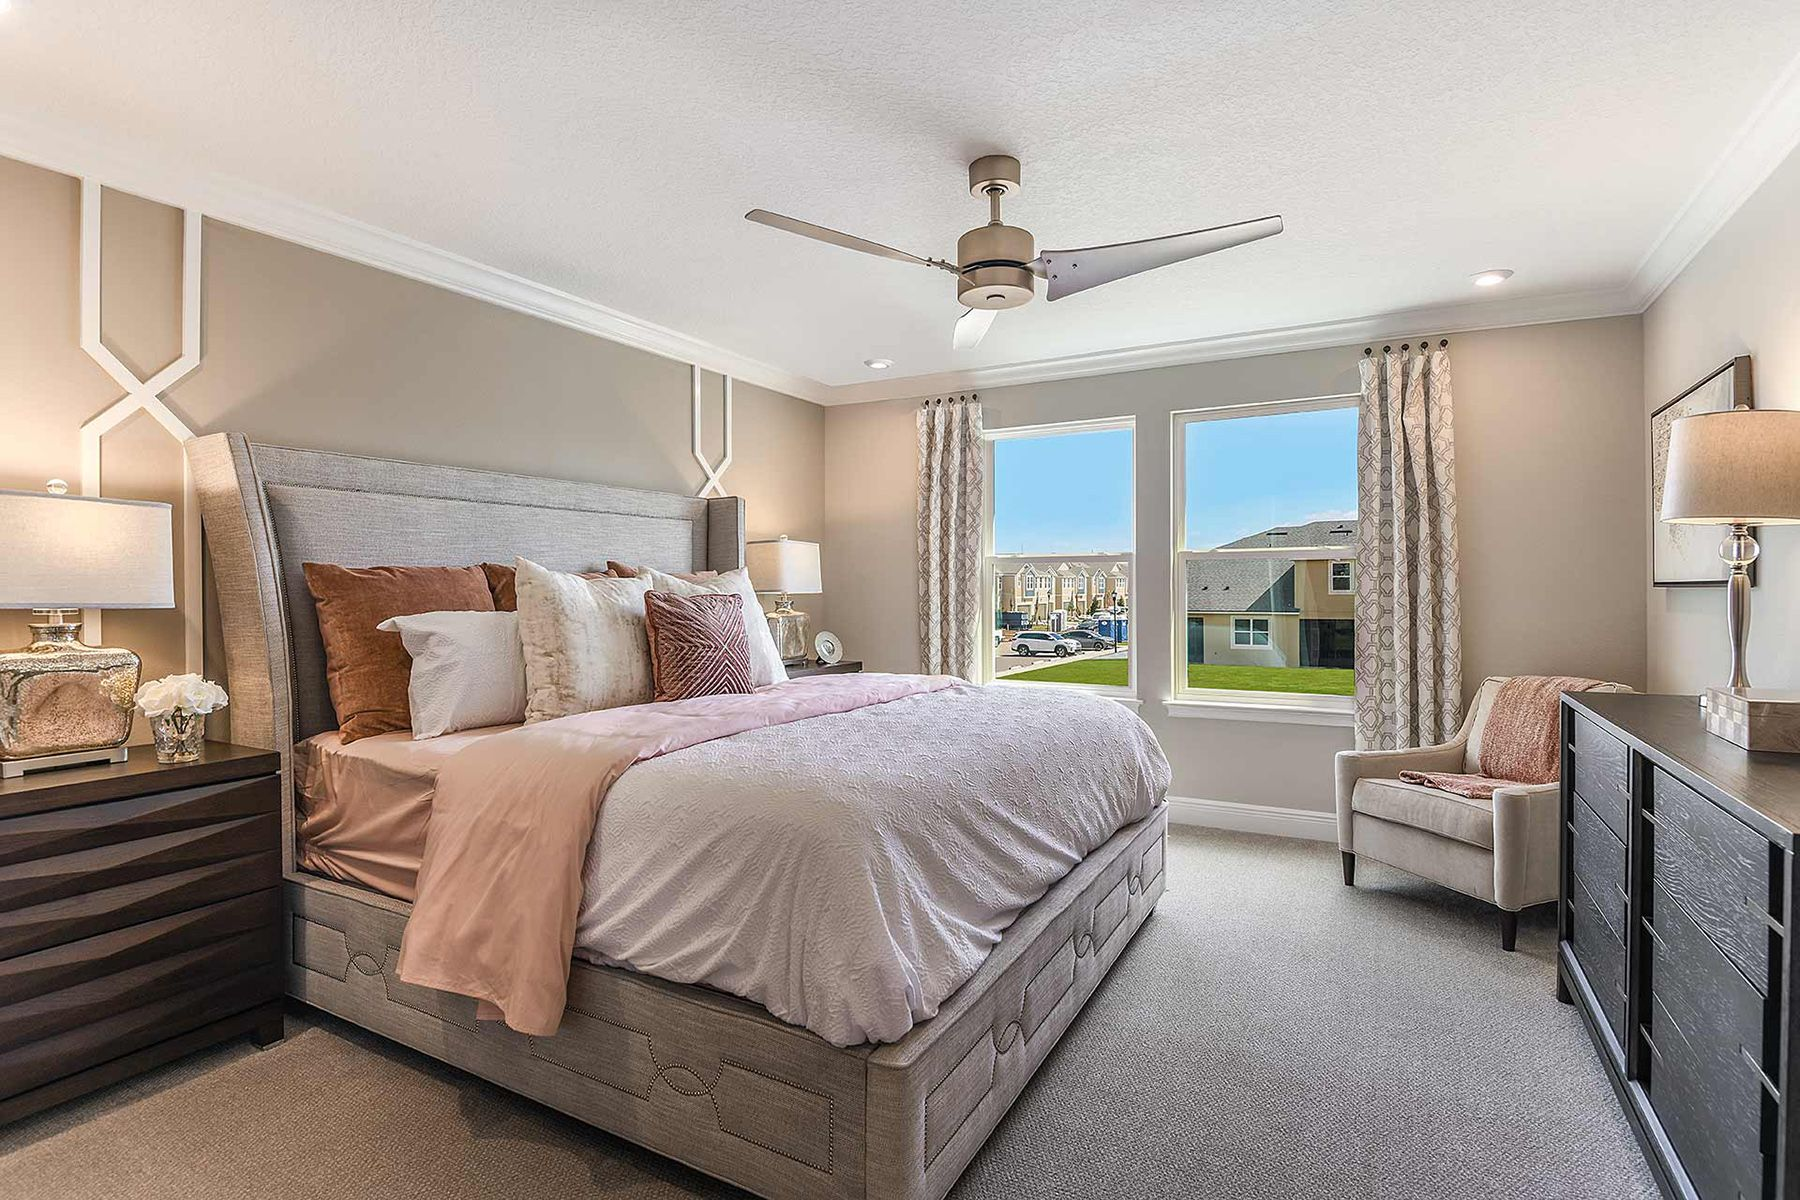 Bedroom featured in the Sebring By Mattamy Homes in Tampa-St. Petersburg, FL